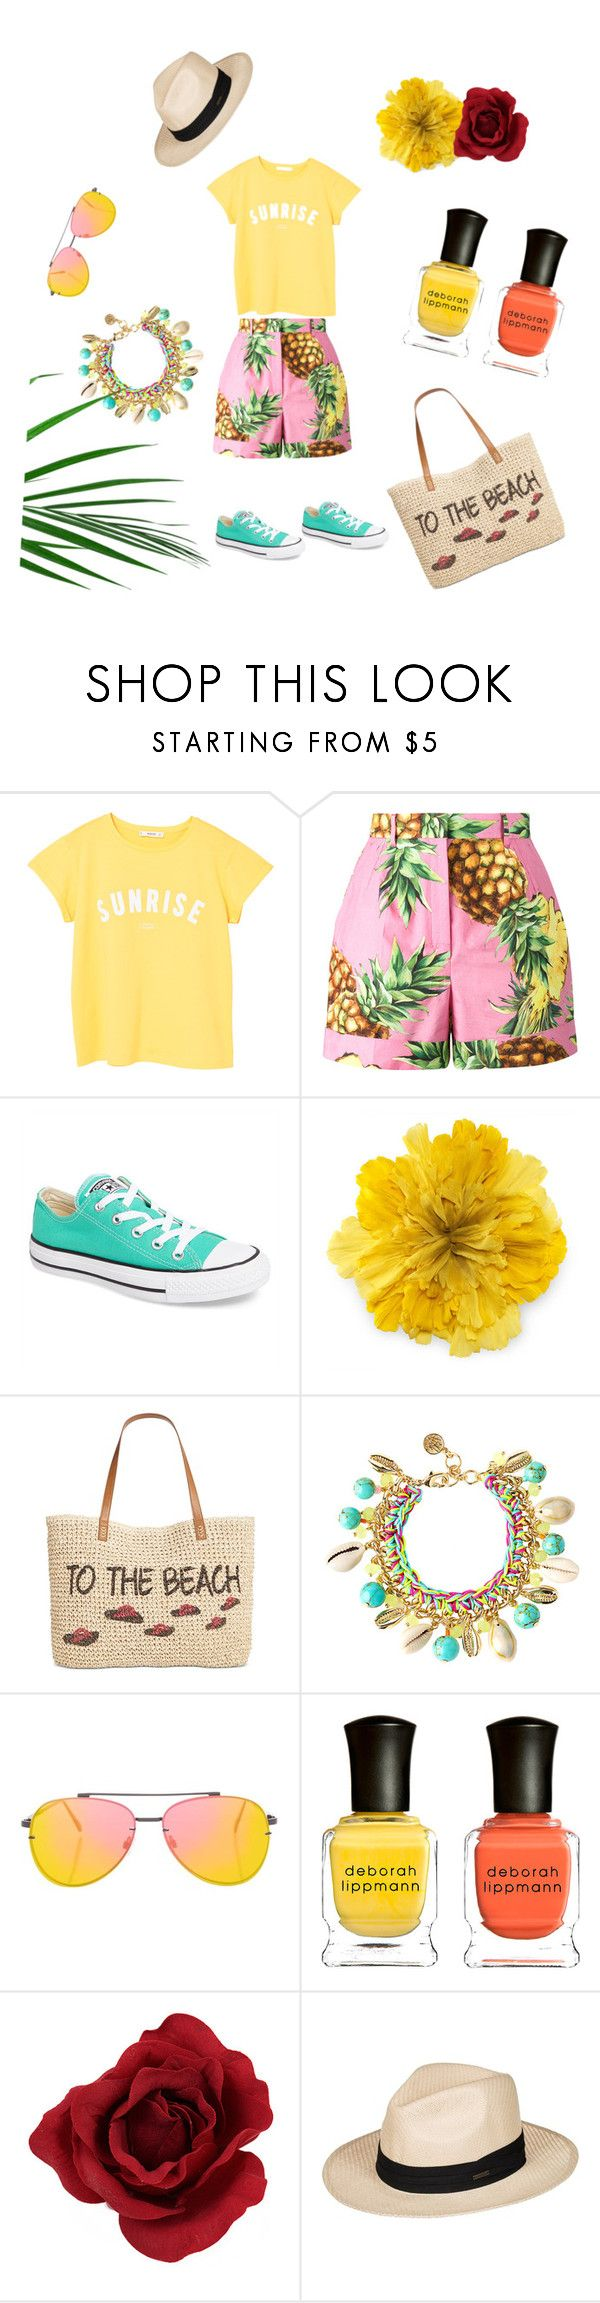 """""""#Пляжная_вечеринка"""" by jeanne-creative ❤ liked on Polyvore featuring MANGO, Dolce&Gabbana, Converse, Gucci, Style & Co., Lilly Pulitzer, Topshop, Deborah Lippmann and Roxy"""